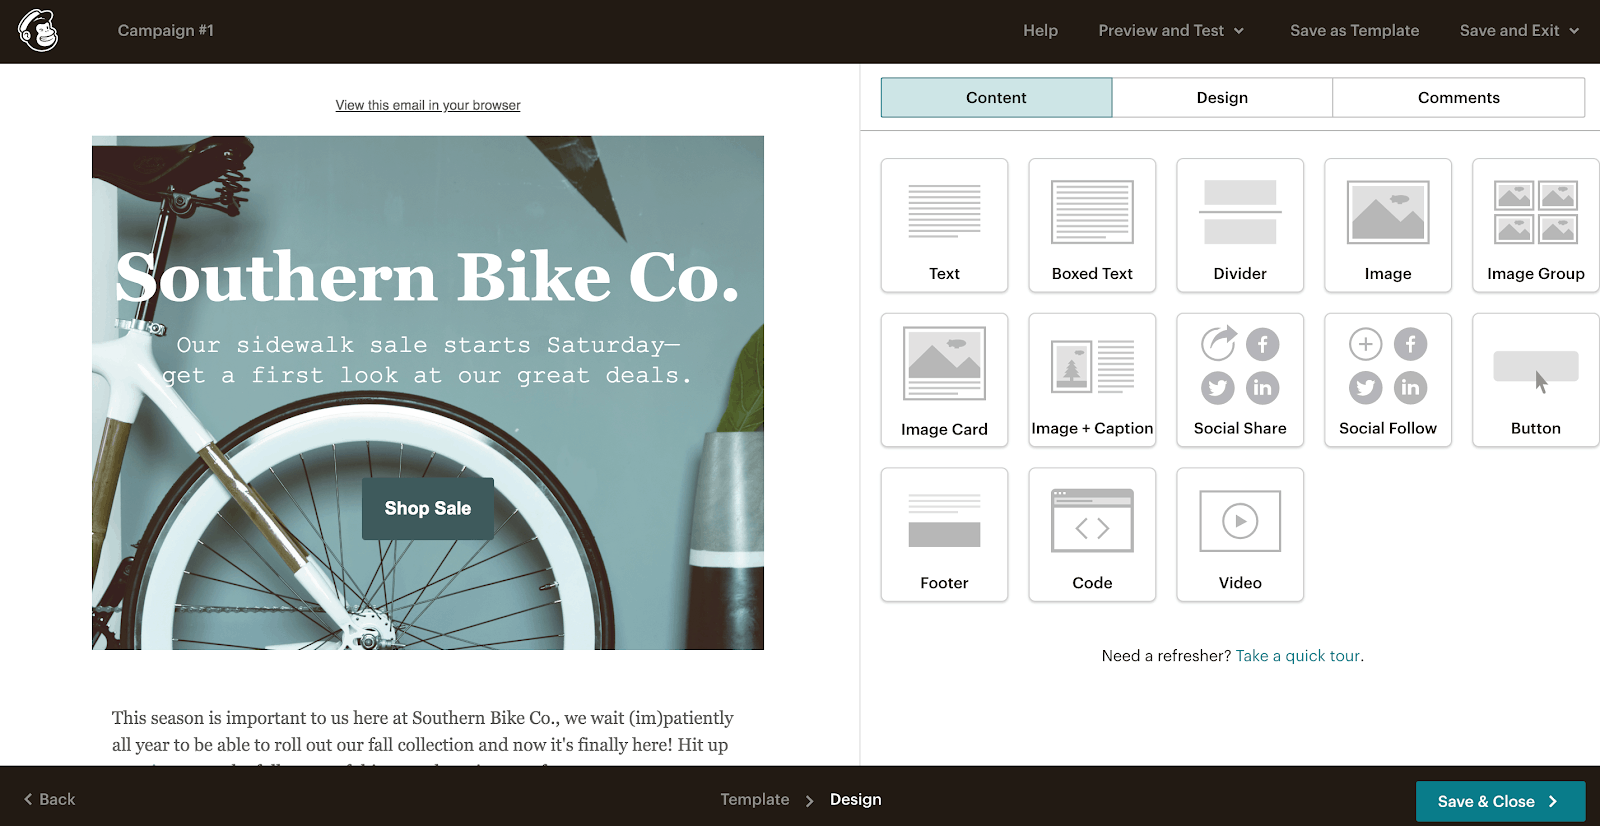 Mailchimp's design blocks and templates